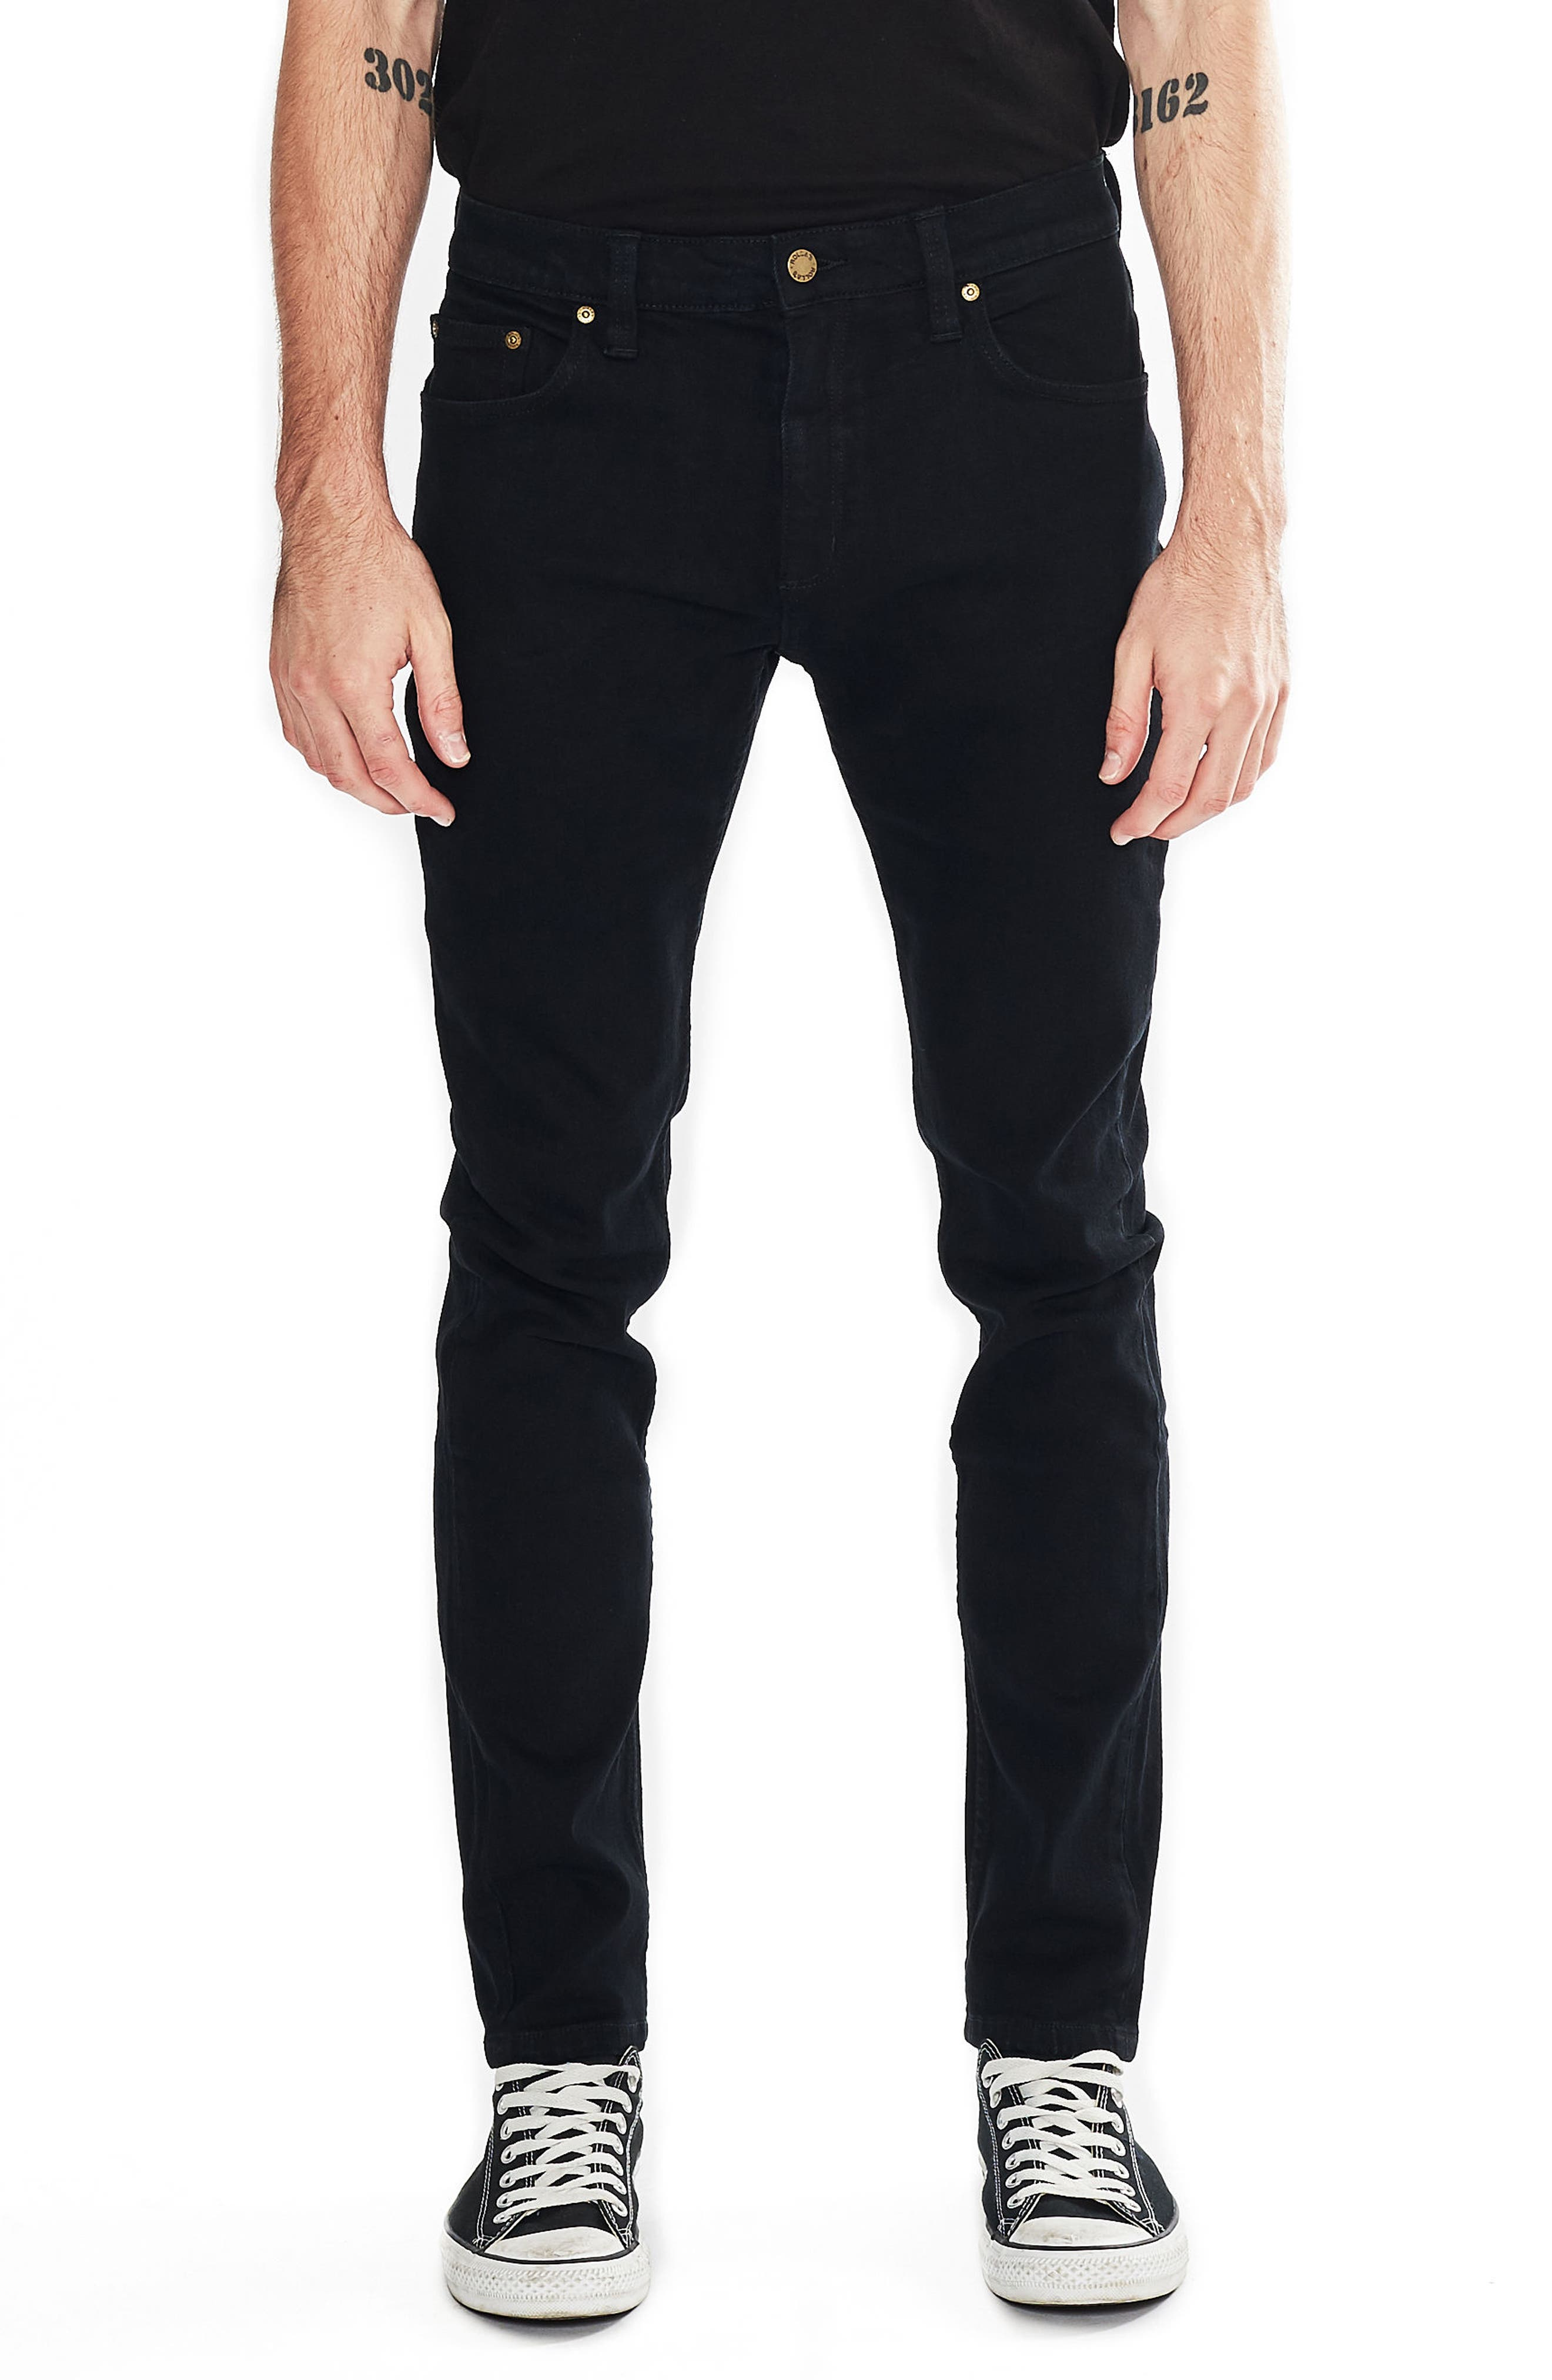 Thin Captain Slim Fit Jeans,                         Main,                         color, Bon Black